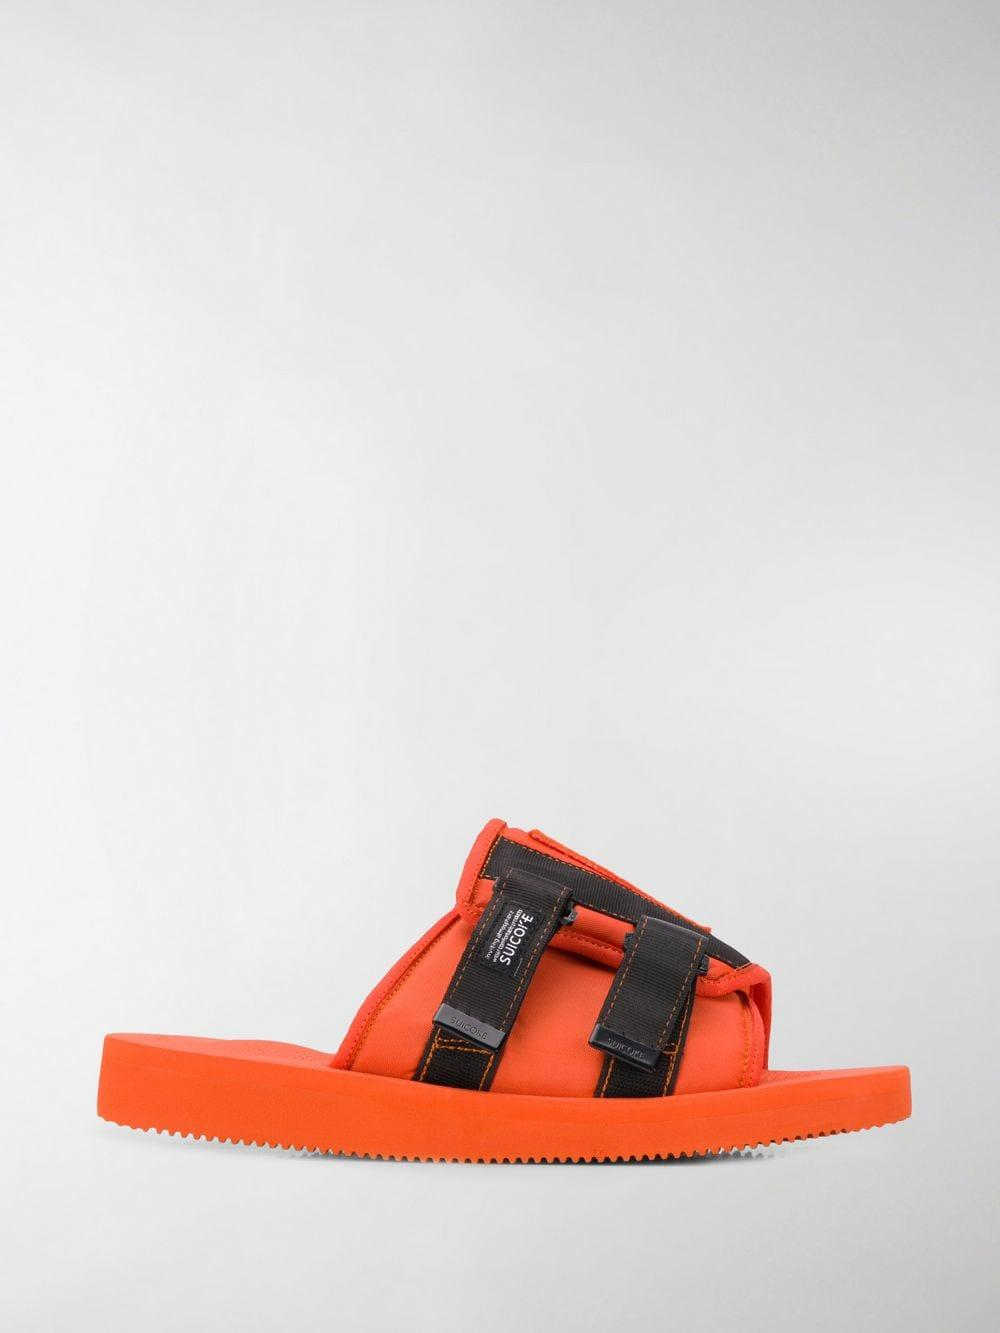 fac8ec74bd7 Lyst - Palm Angels X Suicoke Patch Slider in Orange for Men - Save 30%